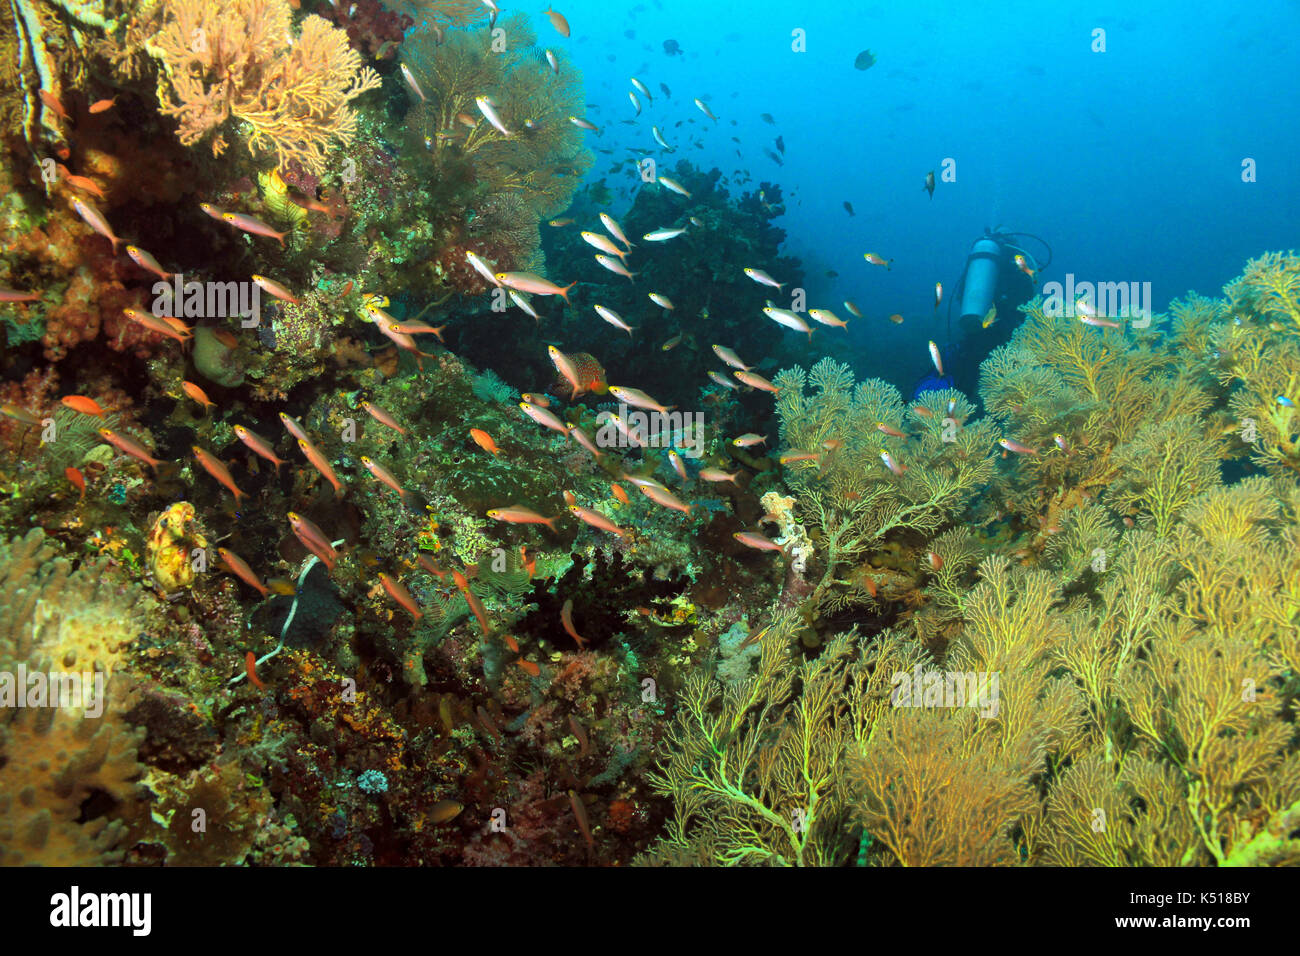 Scuba Diving in Dampier Strait, Raja Ampat, Indonesia - Stock Image